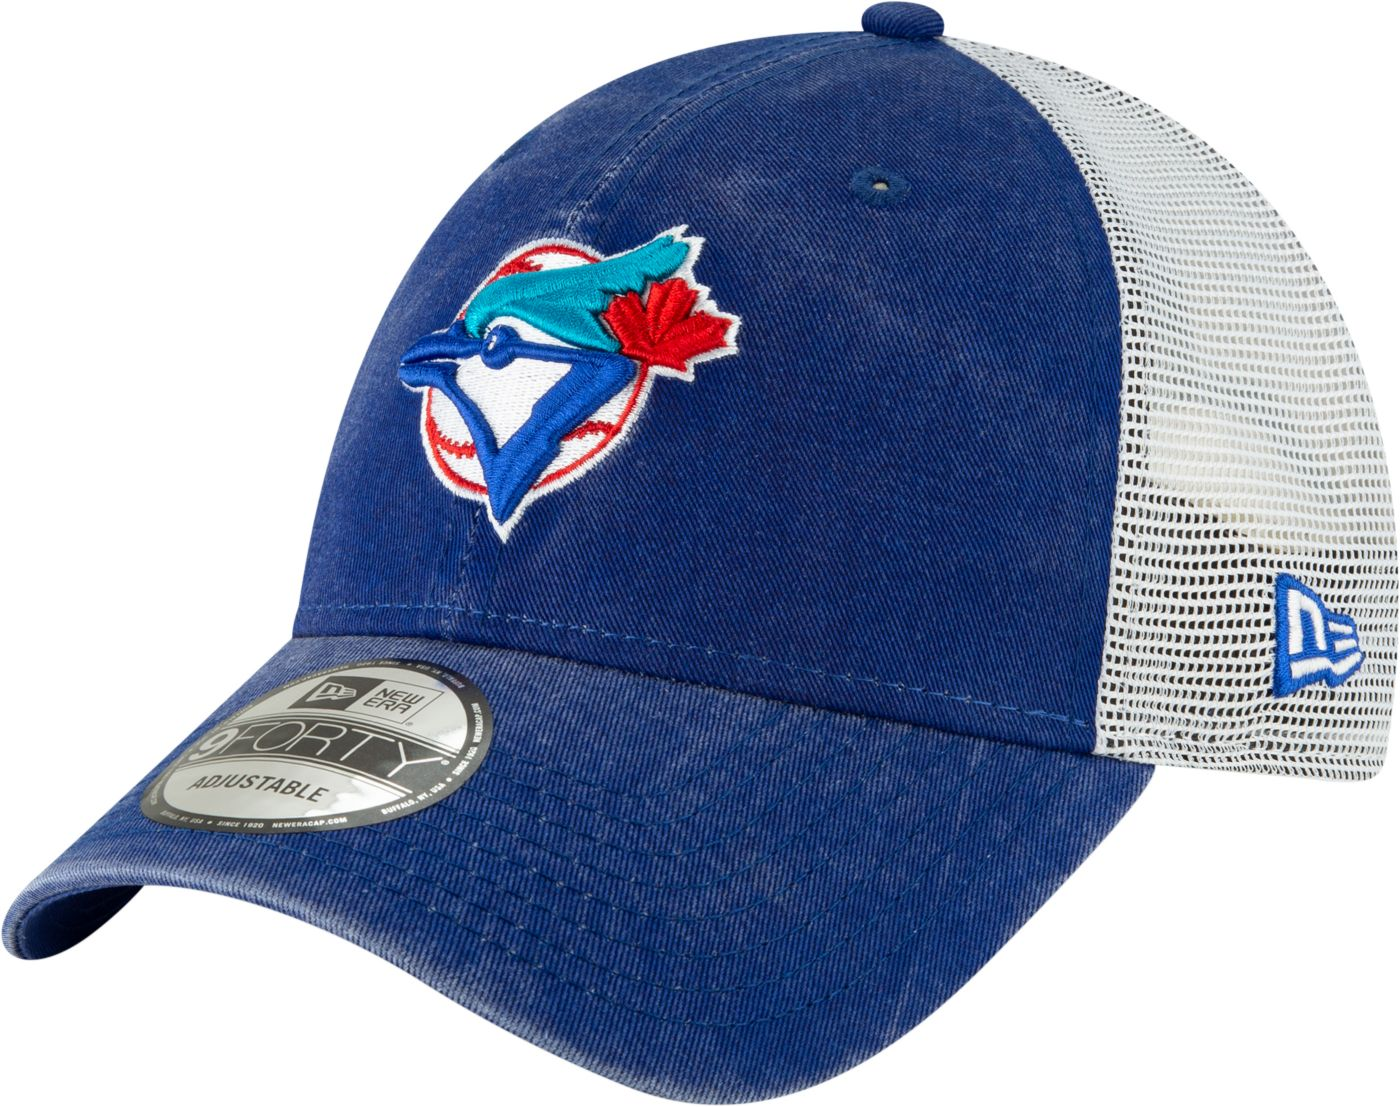 New Era Men's Toronto Blue Jays 9Forty Cooperstown Trucker Adjustable Hat